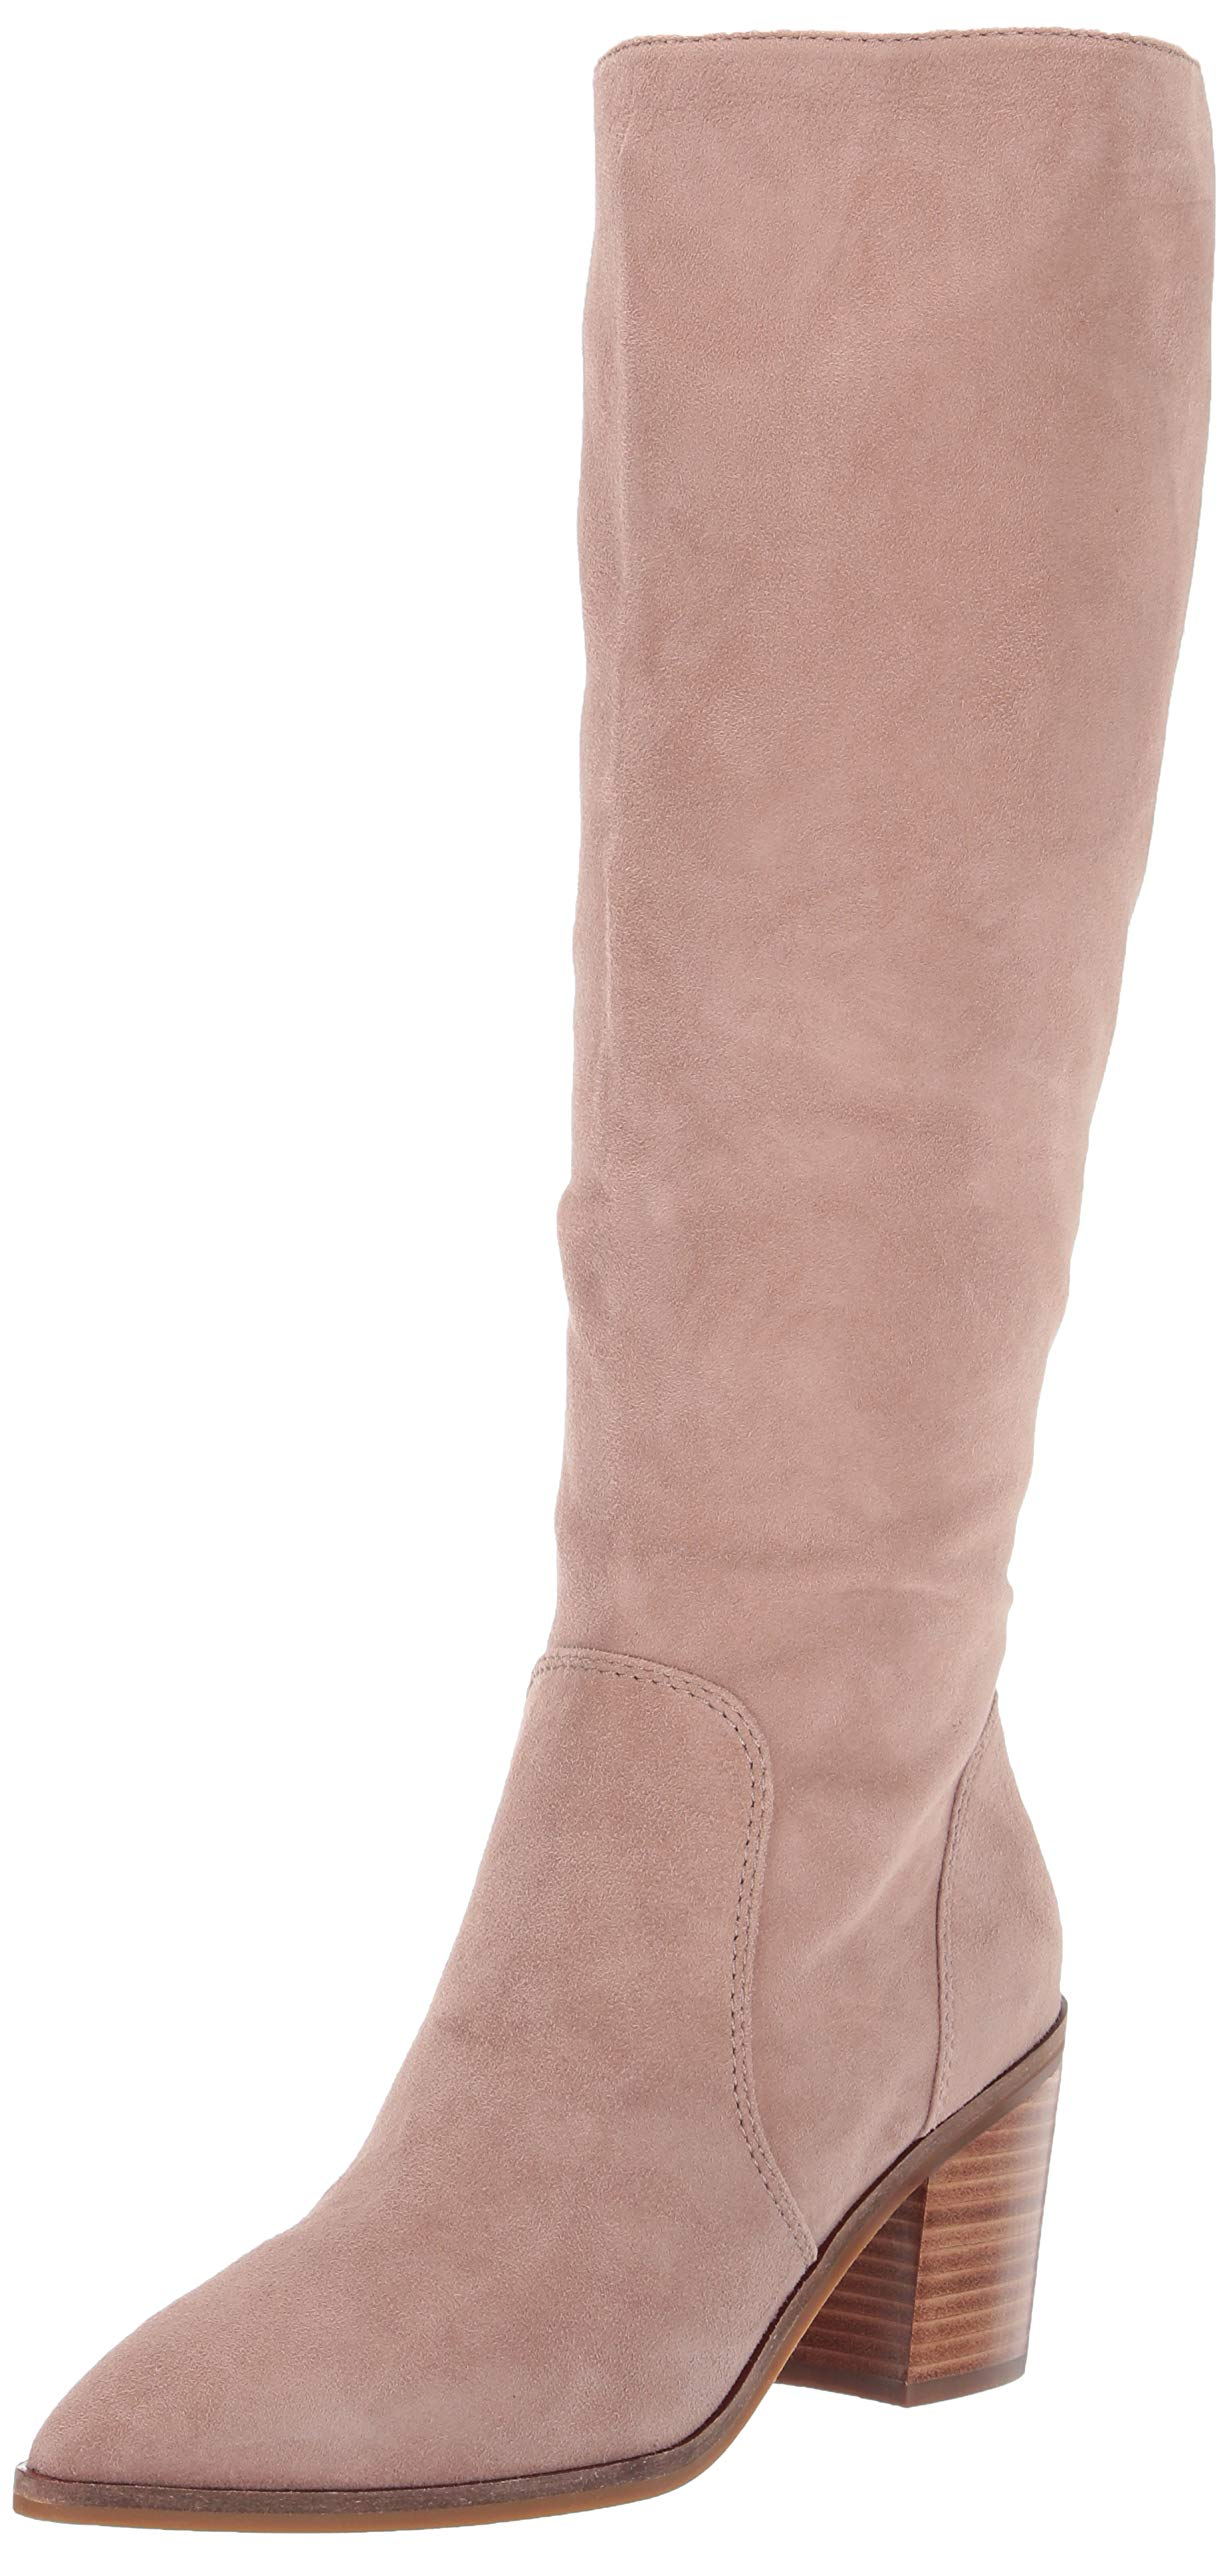 Cole Haan Women's Willa Boot 75Mm Knee High, Stone Taupe Suede, 10.5 B US by Cole Haan